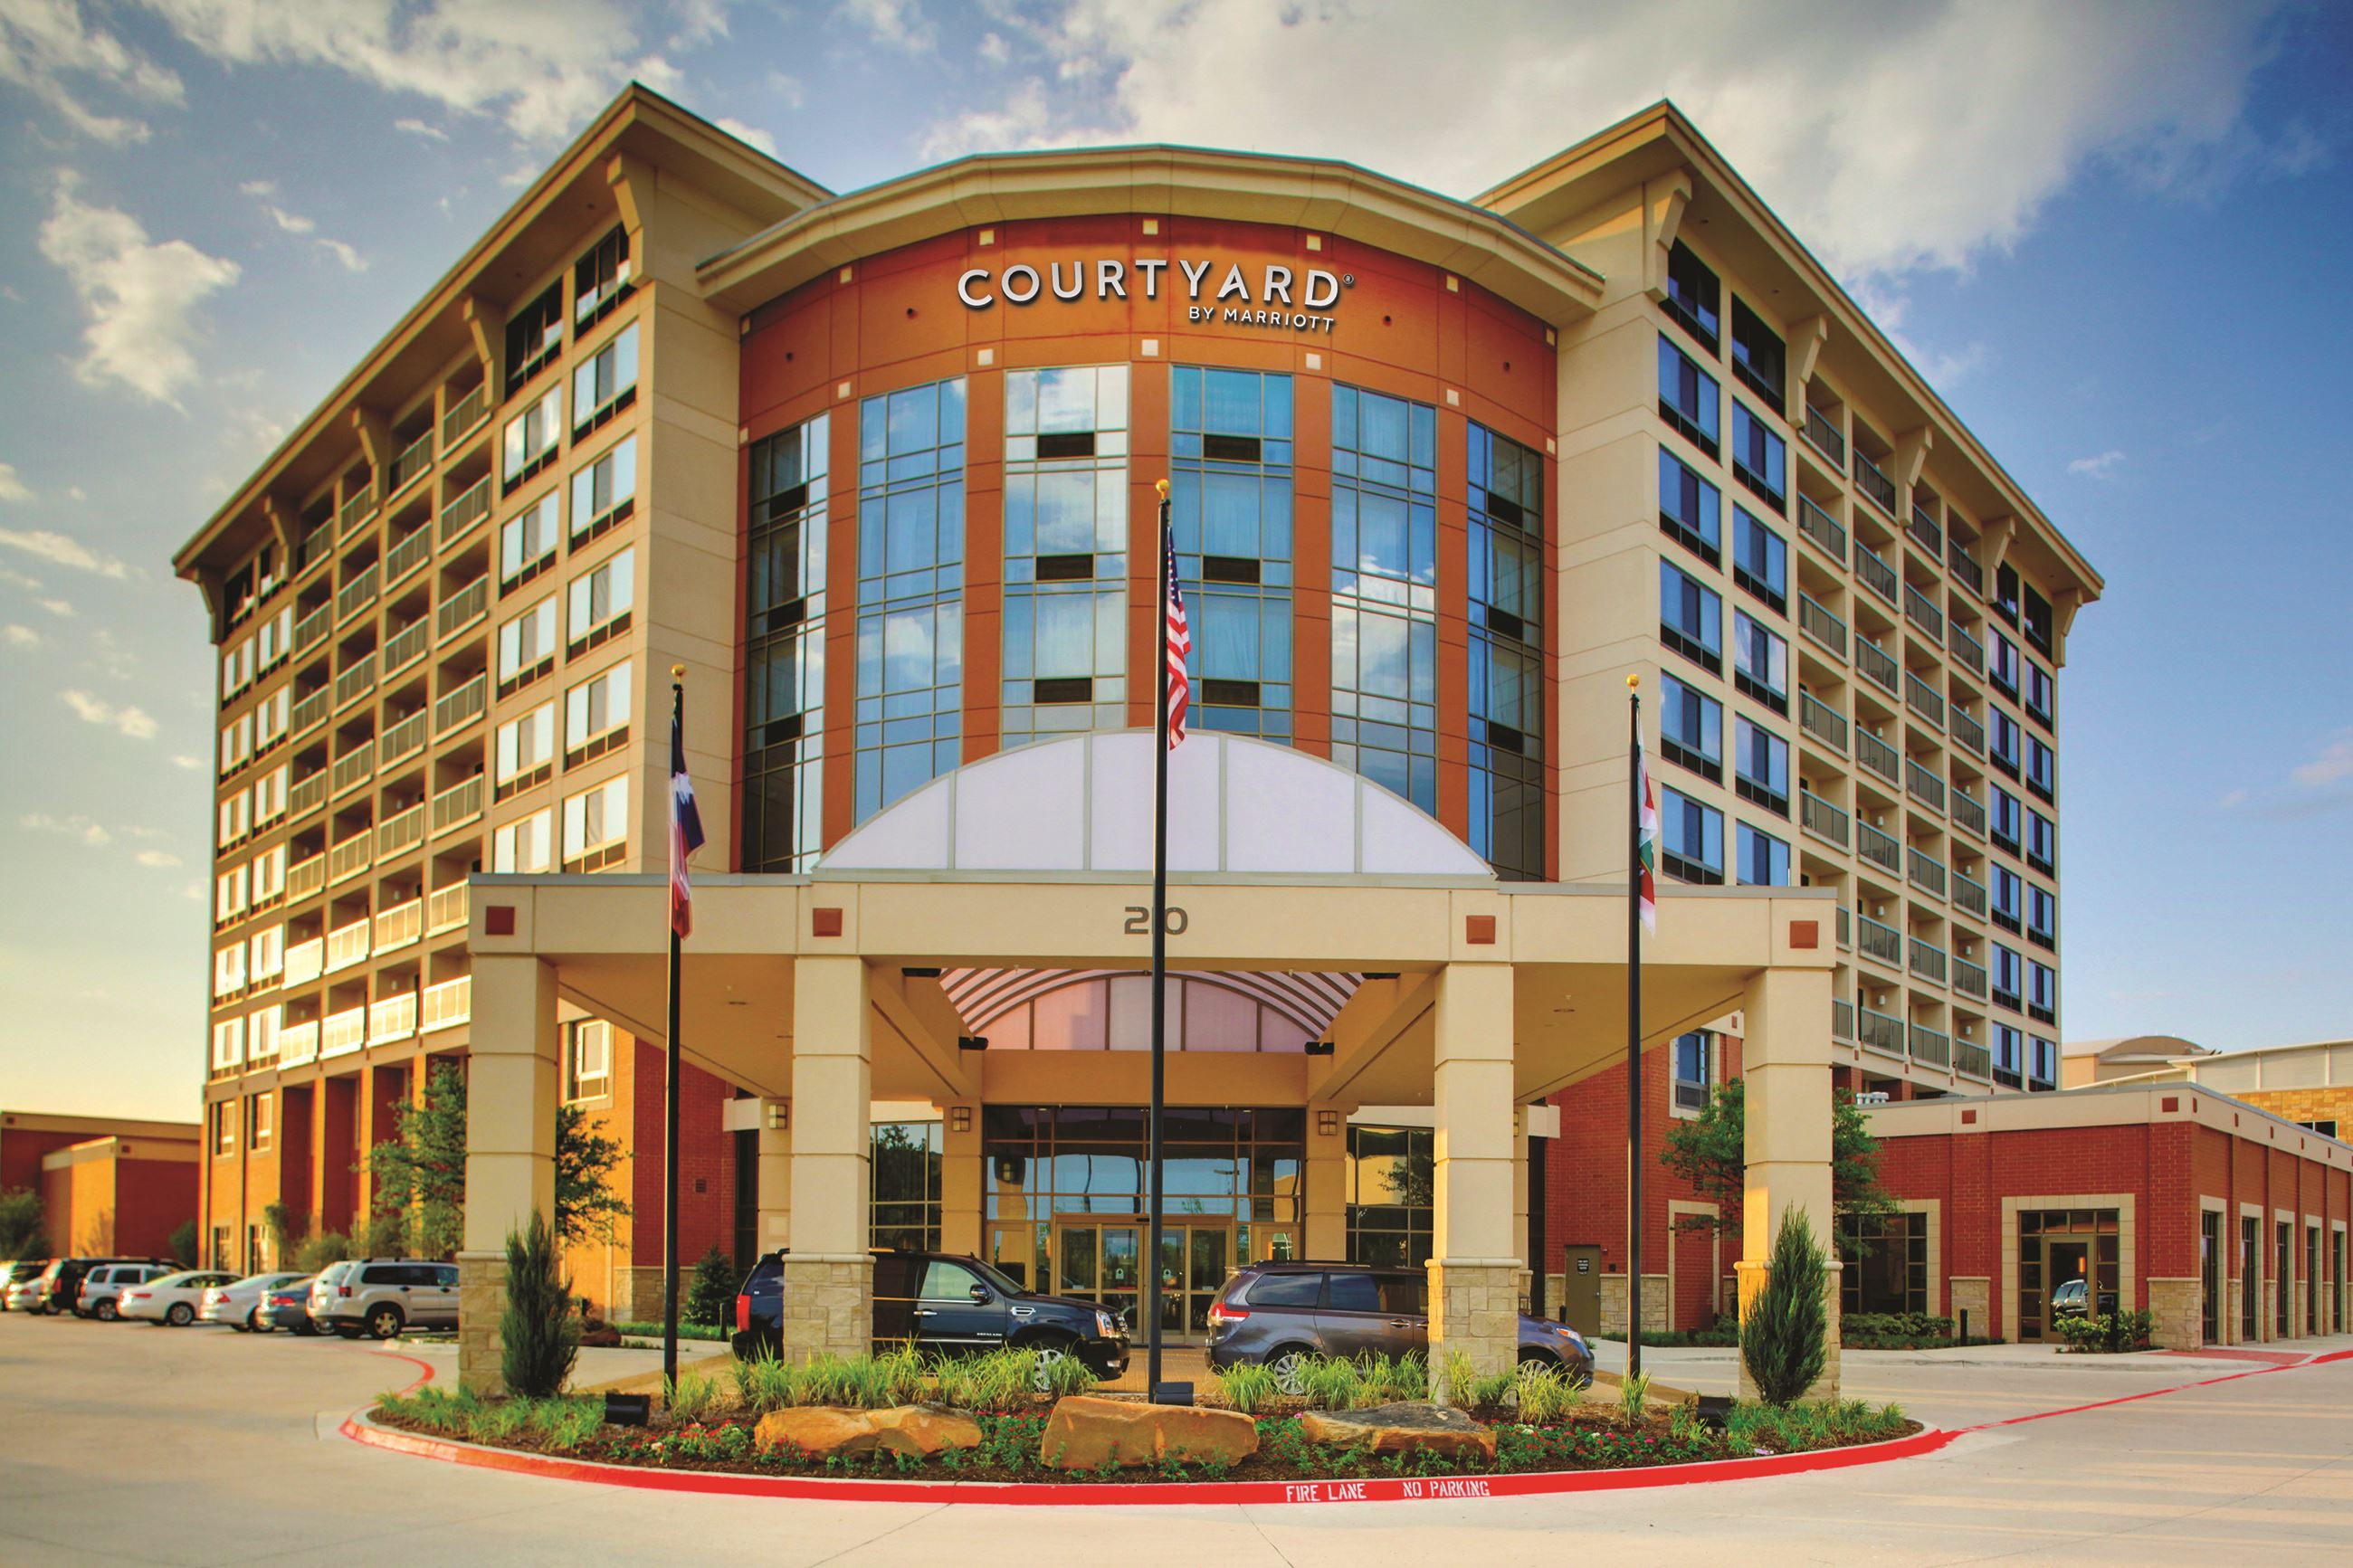 Exterior photo of the Courtyard Marriott at Allen Event Center